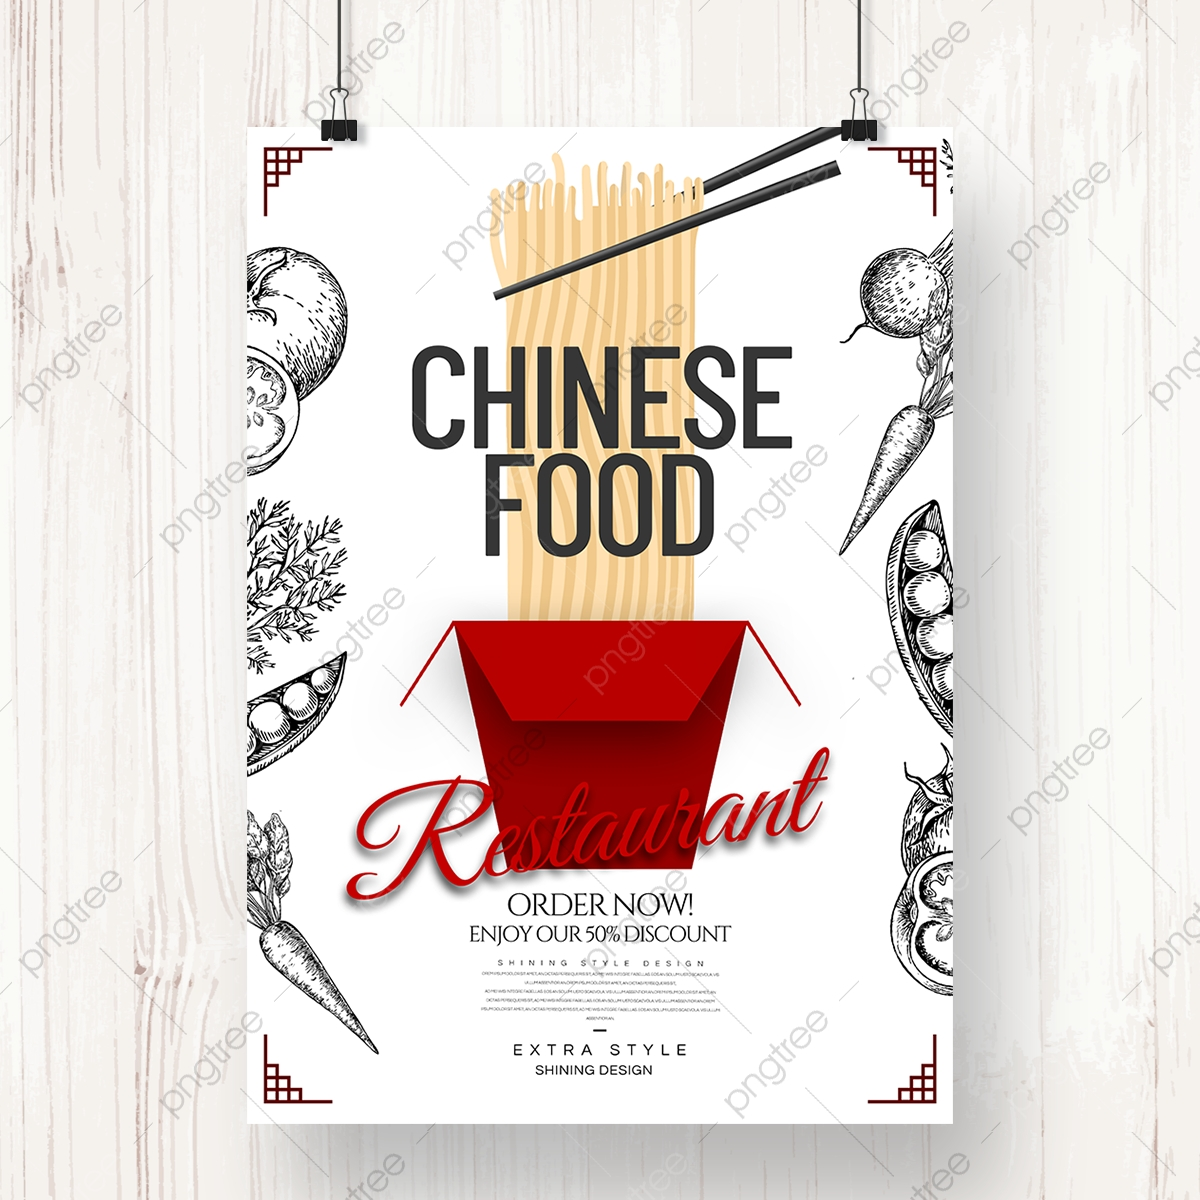 Simple Hand Drawn Cartoon Style Gourmet Chinese Restaurant Theme Poster Template Download On Pngtree